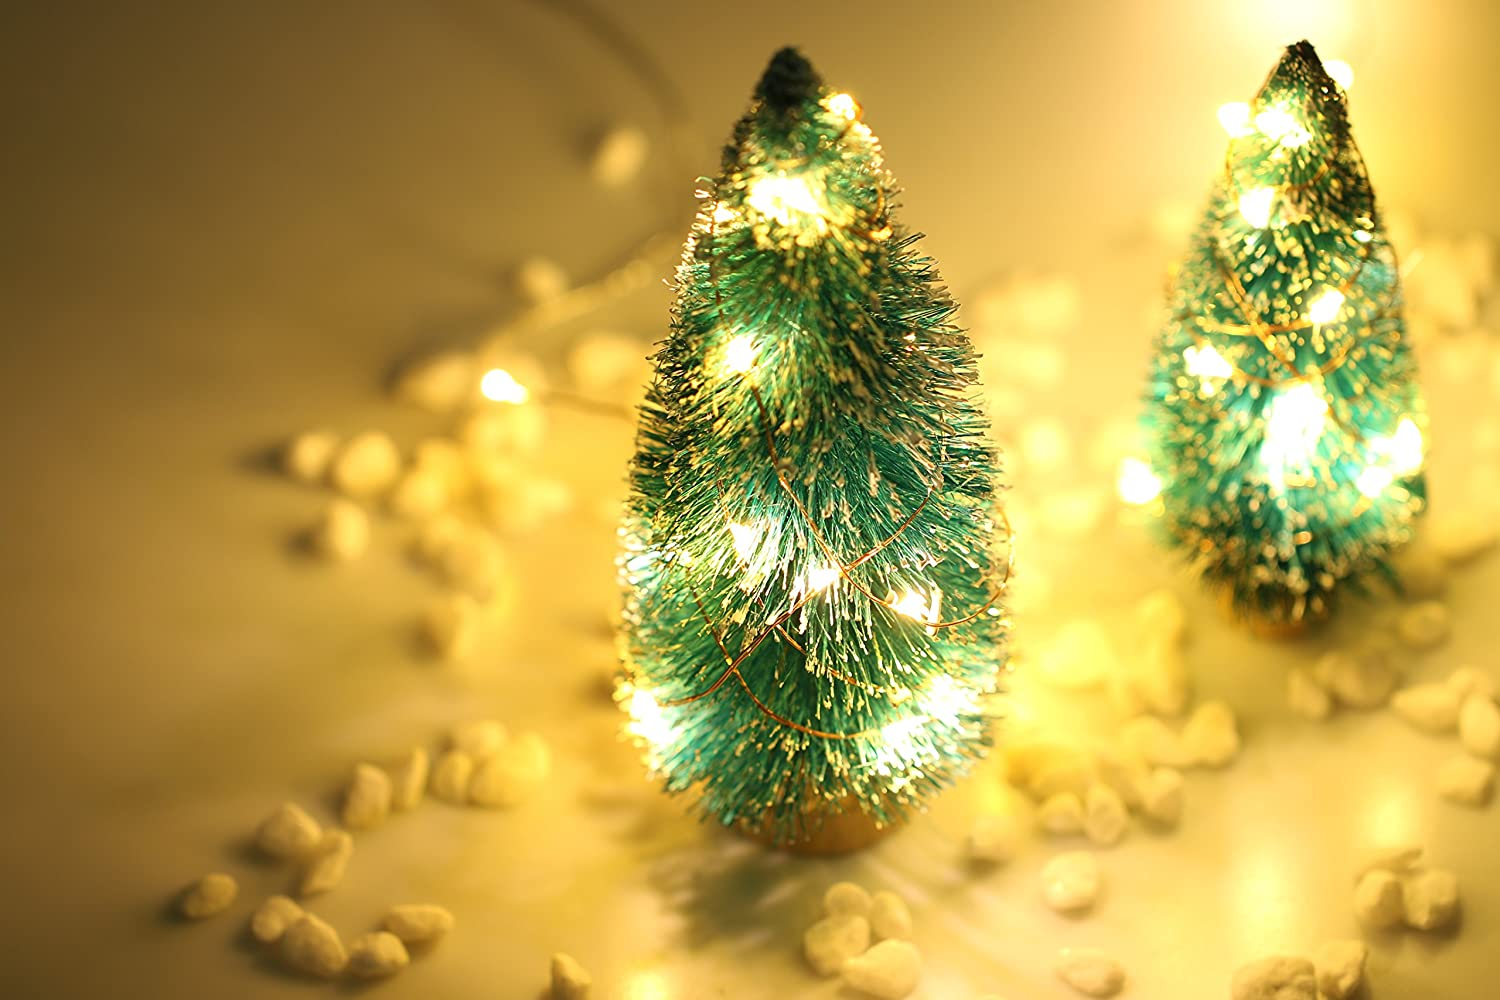 Amazon.com: Pack of 10 LED Starry String Lights CR2032 Battery ...